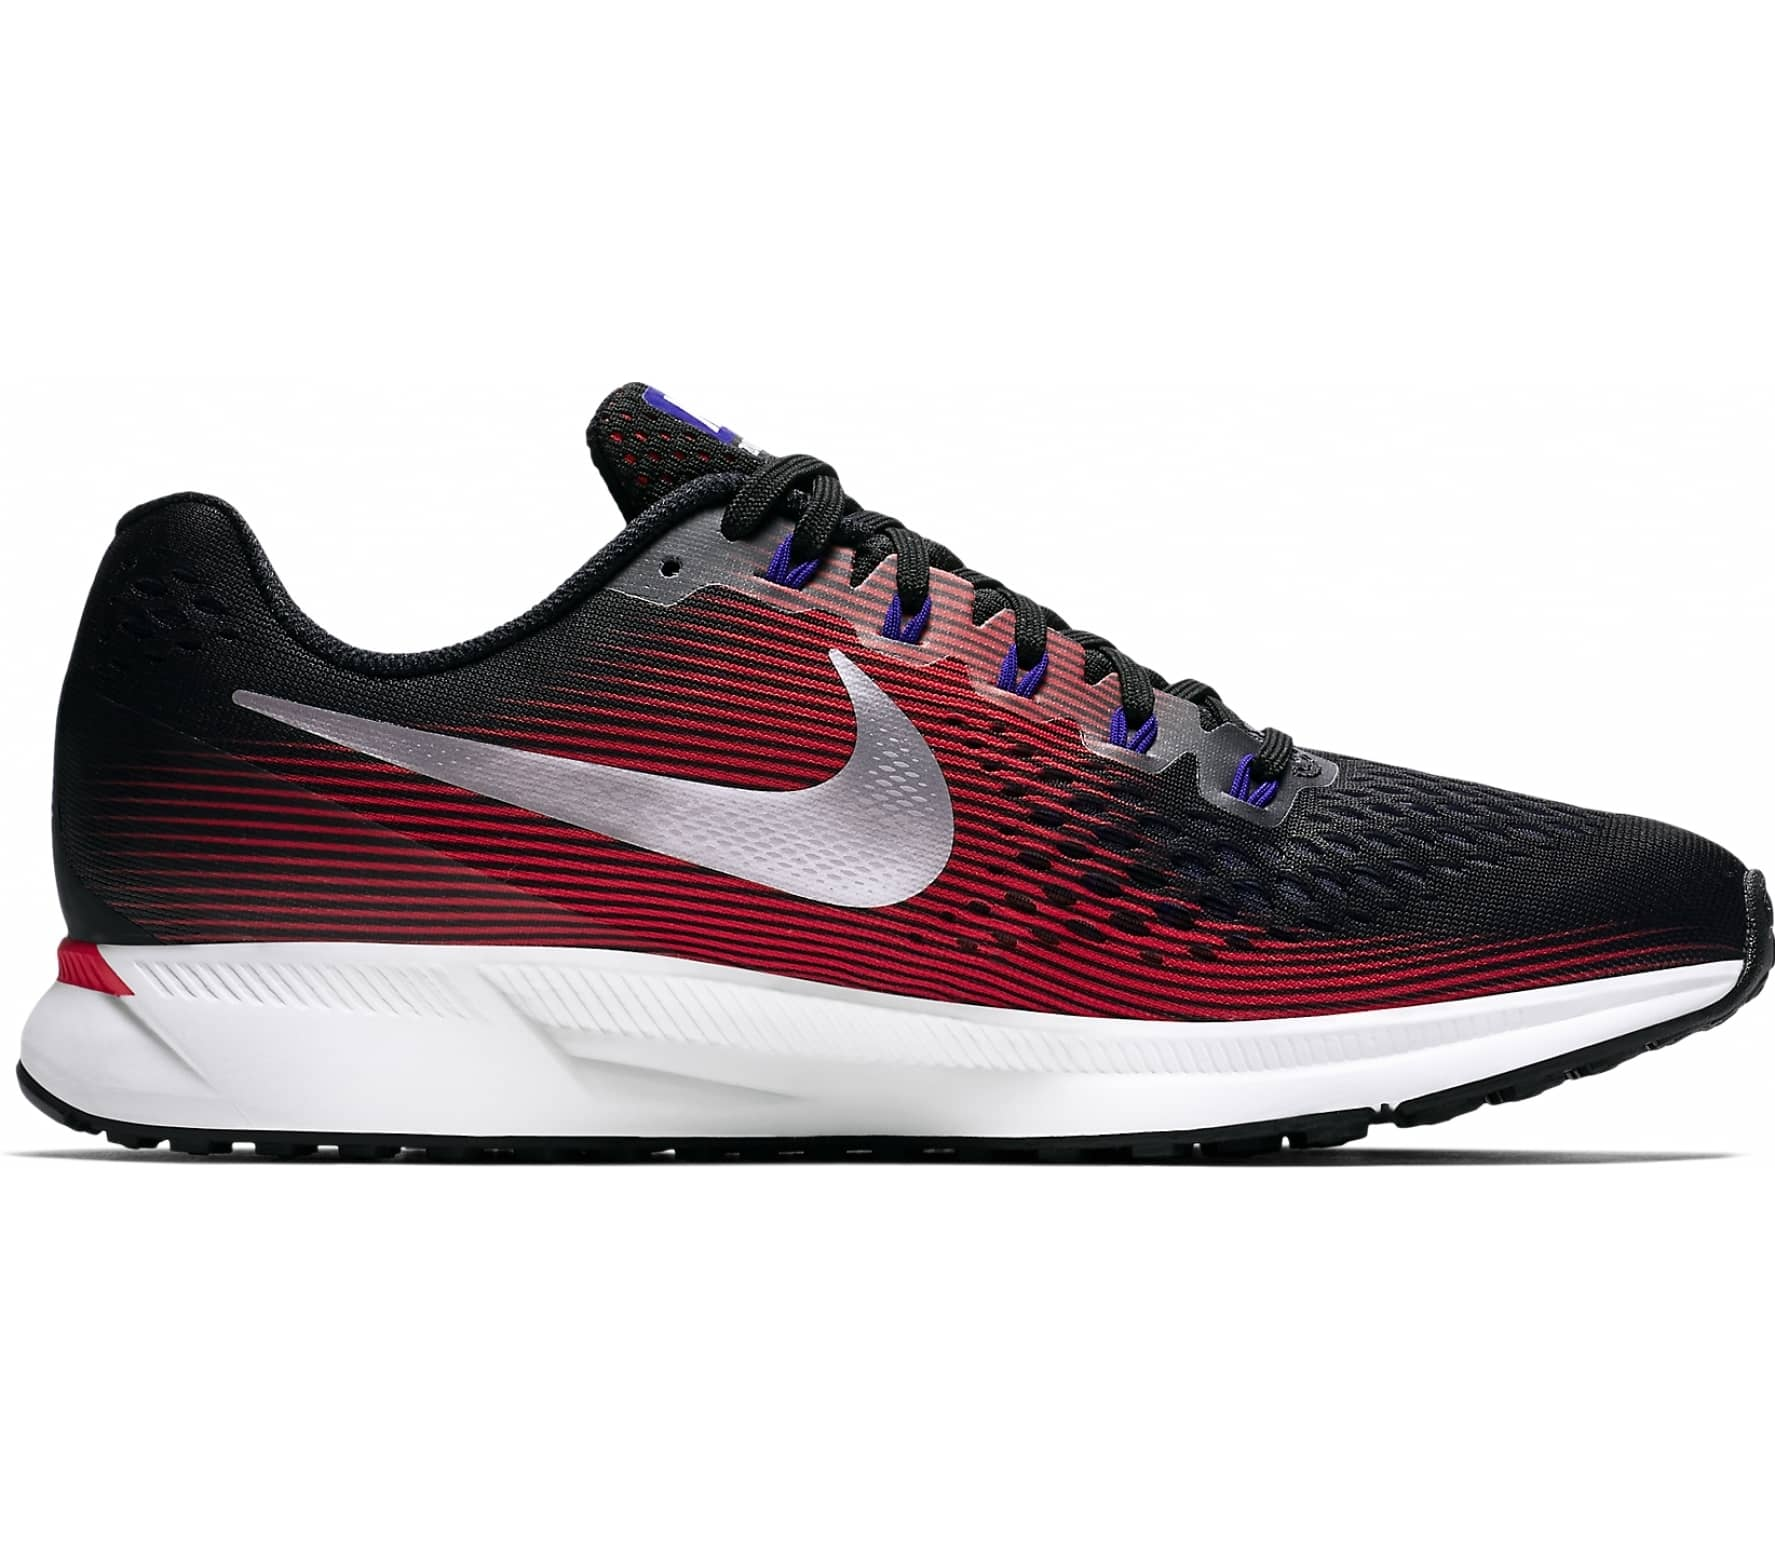 nike air zoom pegasus 34 herren laufschuh schwarz rot. Black Bedroom Furniture Sets. Home Design Ideas